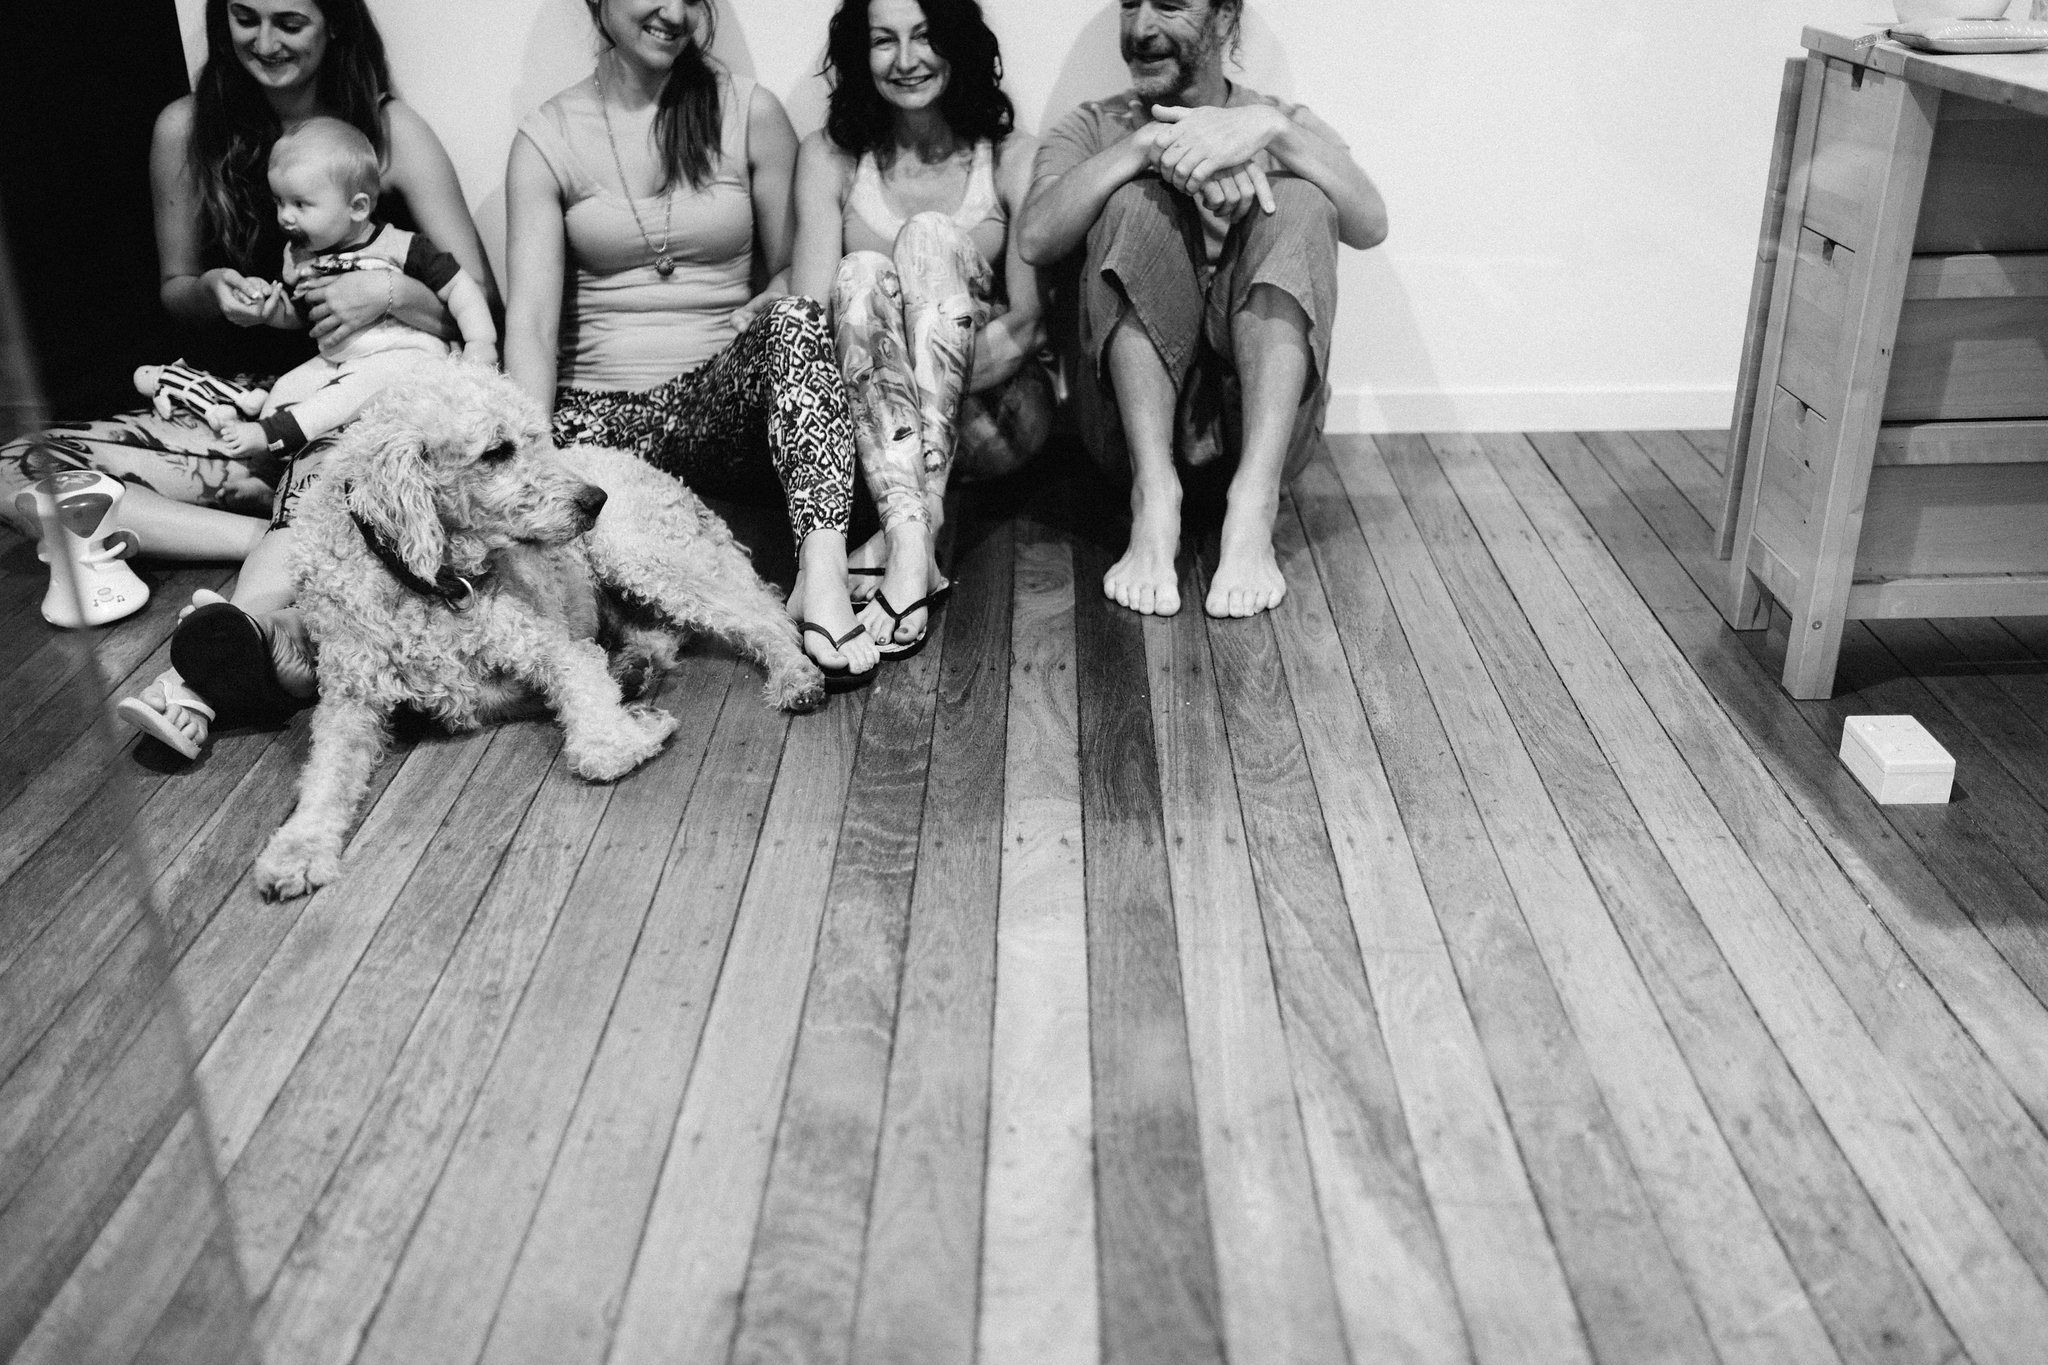 Messy human yogis hanging out with Benji